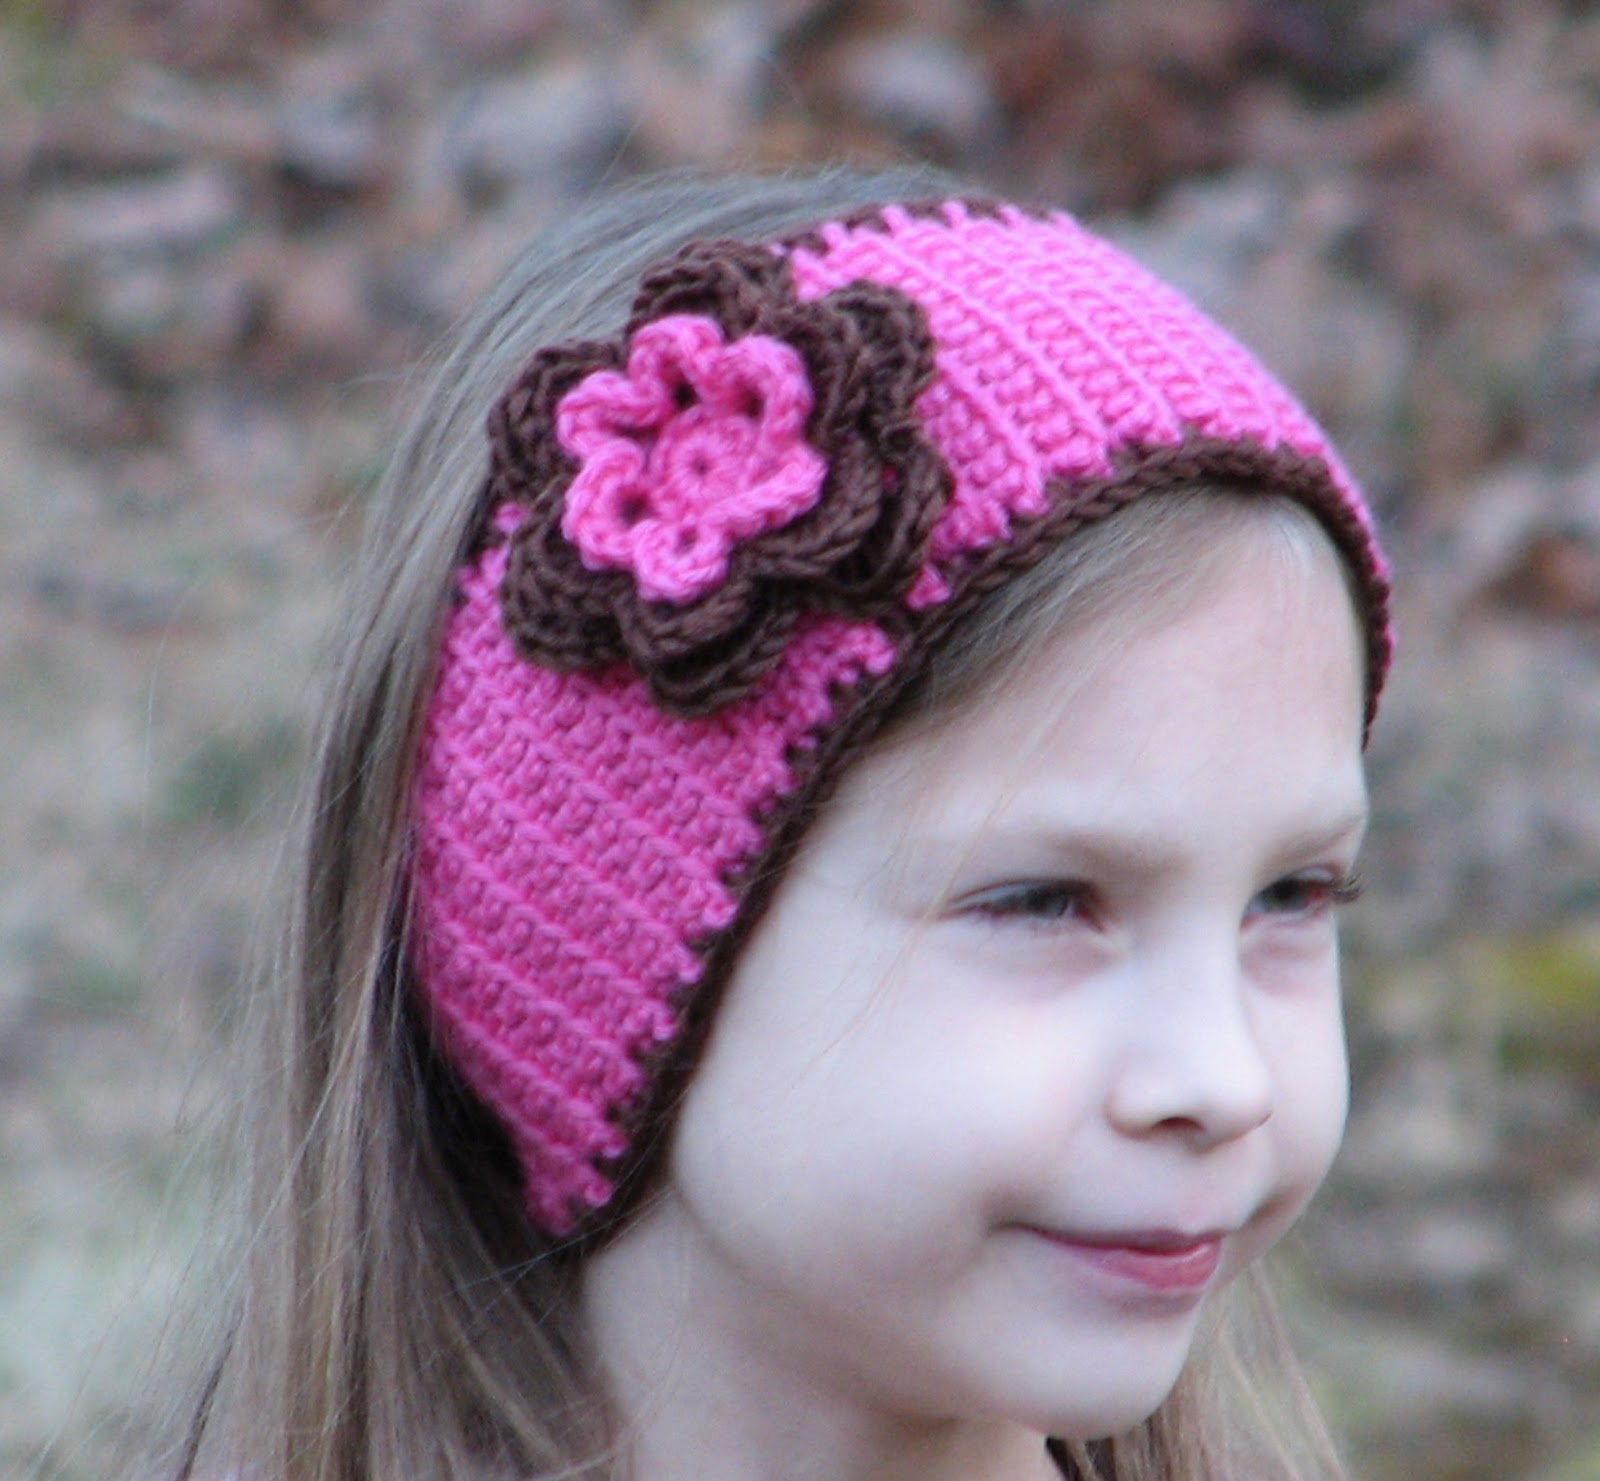 Free Crochet Pattern Headwrap : Girls Headwrap Crochet Pattern - Ambassador Crochet ...